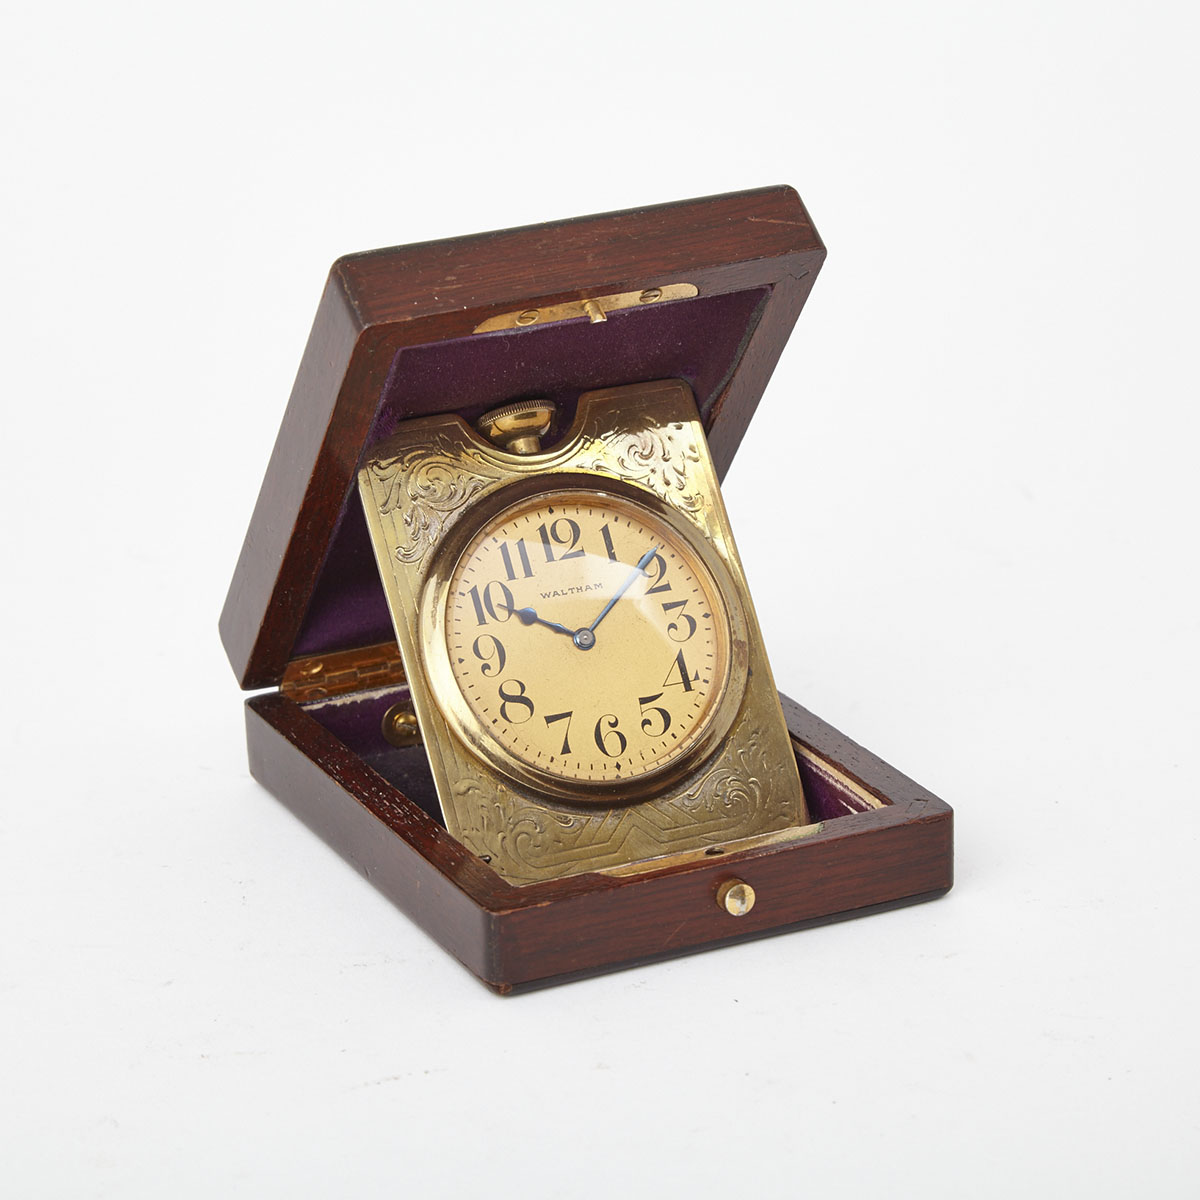 American Waltham Watch Company Mahogany Cased Travel Clock, 19th century